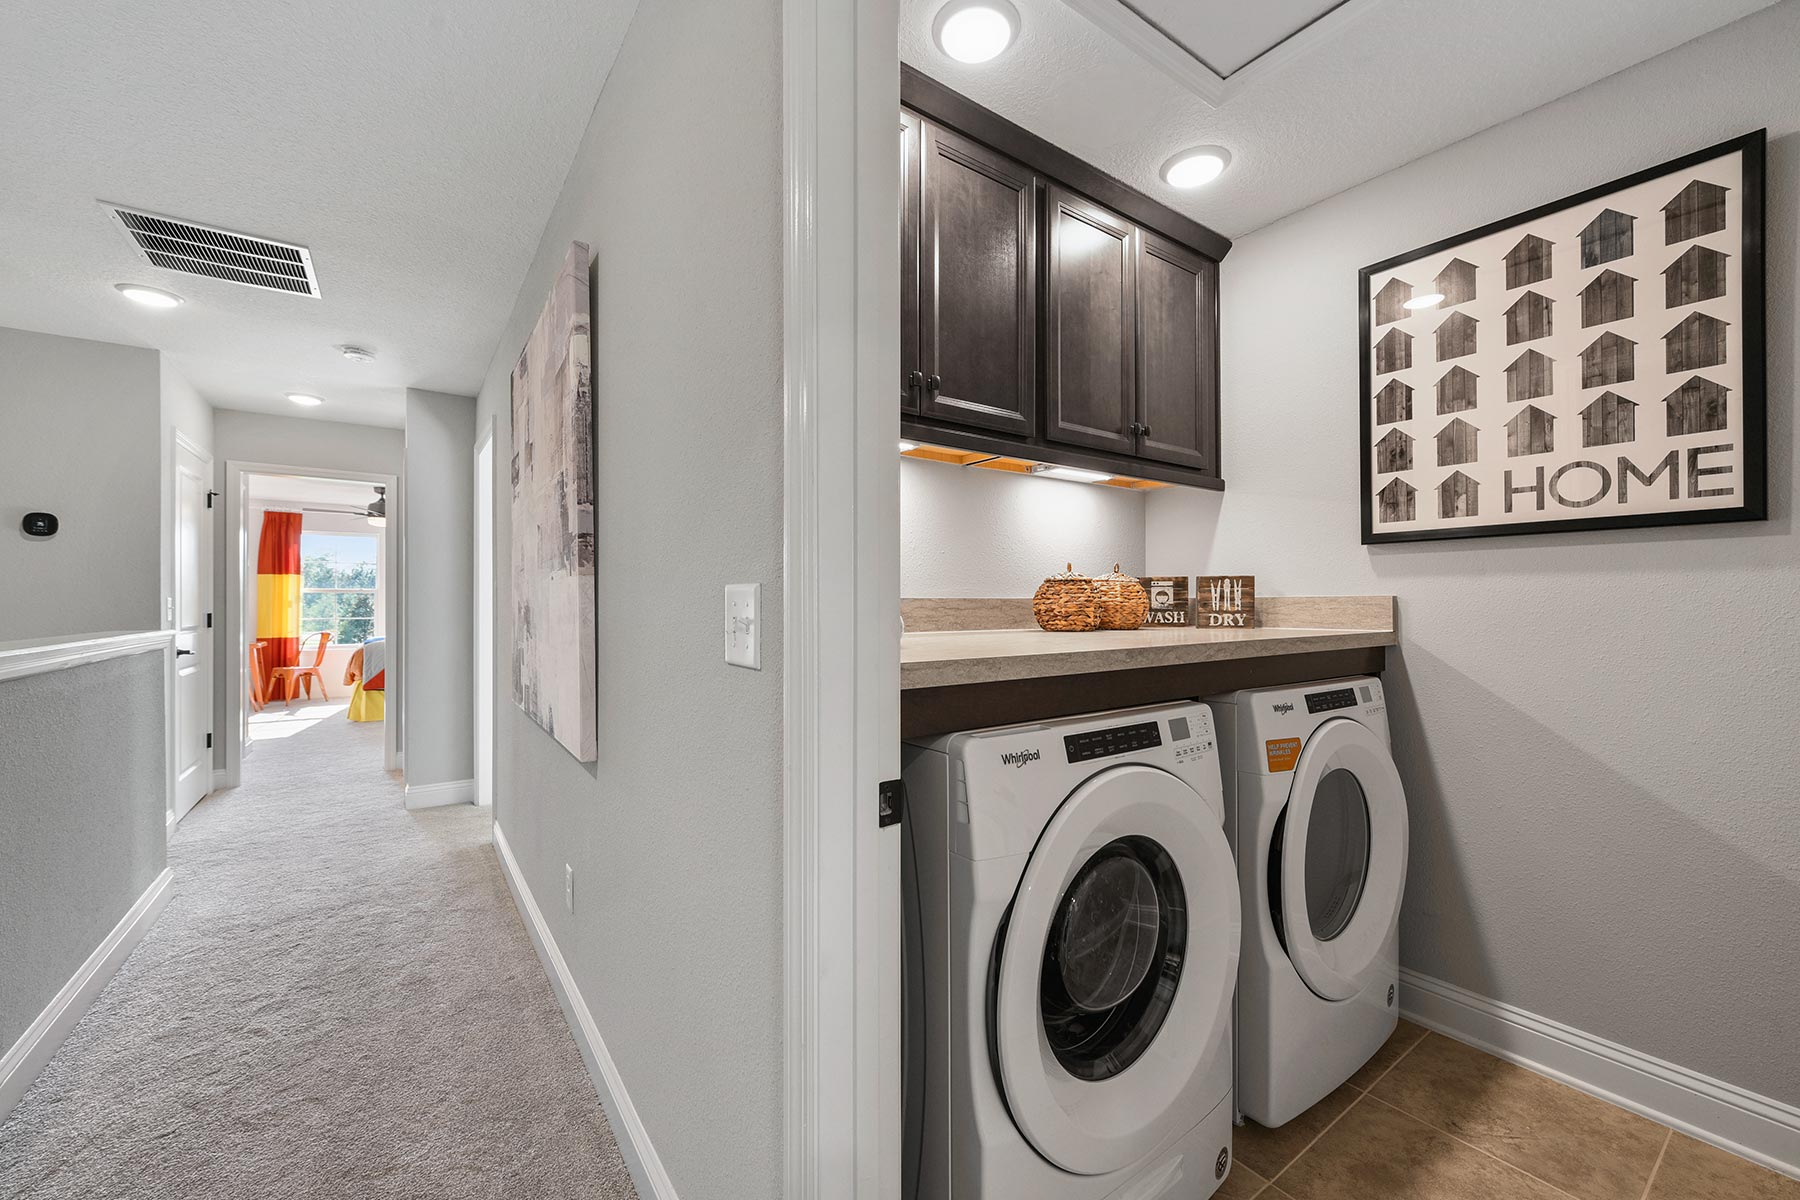 Spring Plan Laundry at Wells Creek in Jacksonville Florida by Mattamy Homes